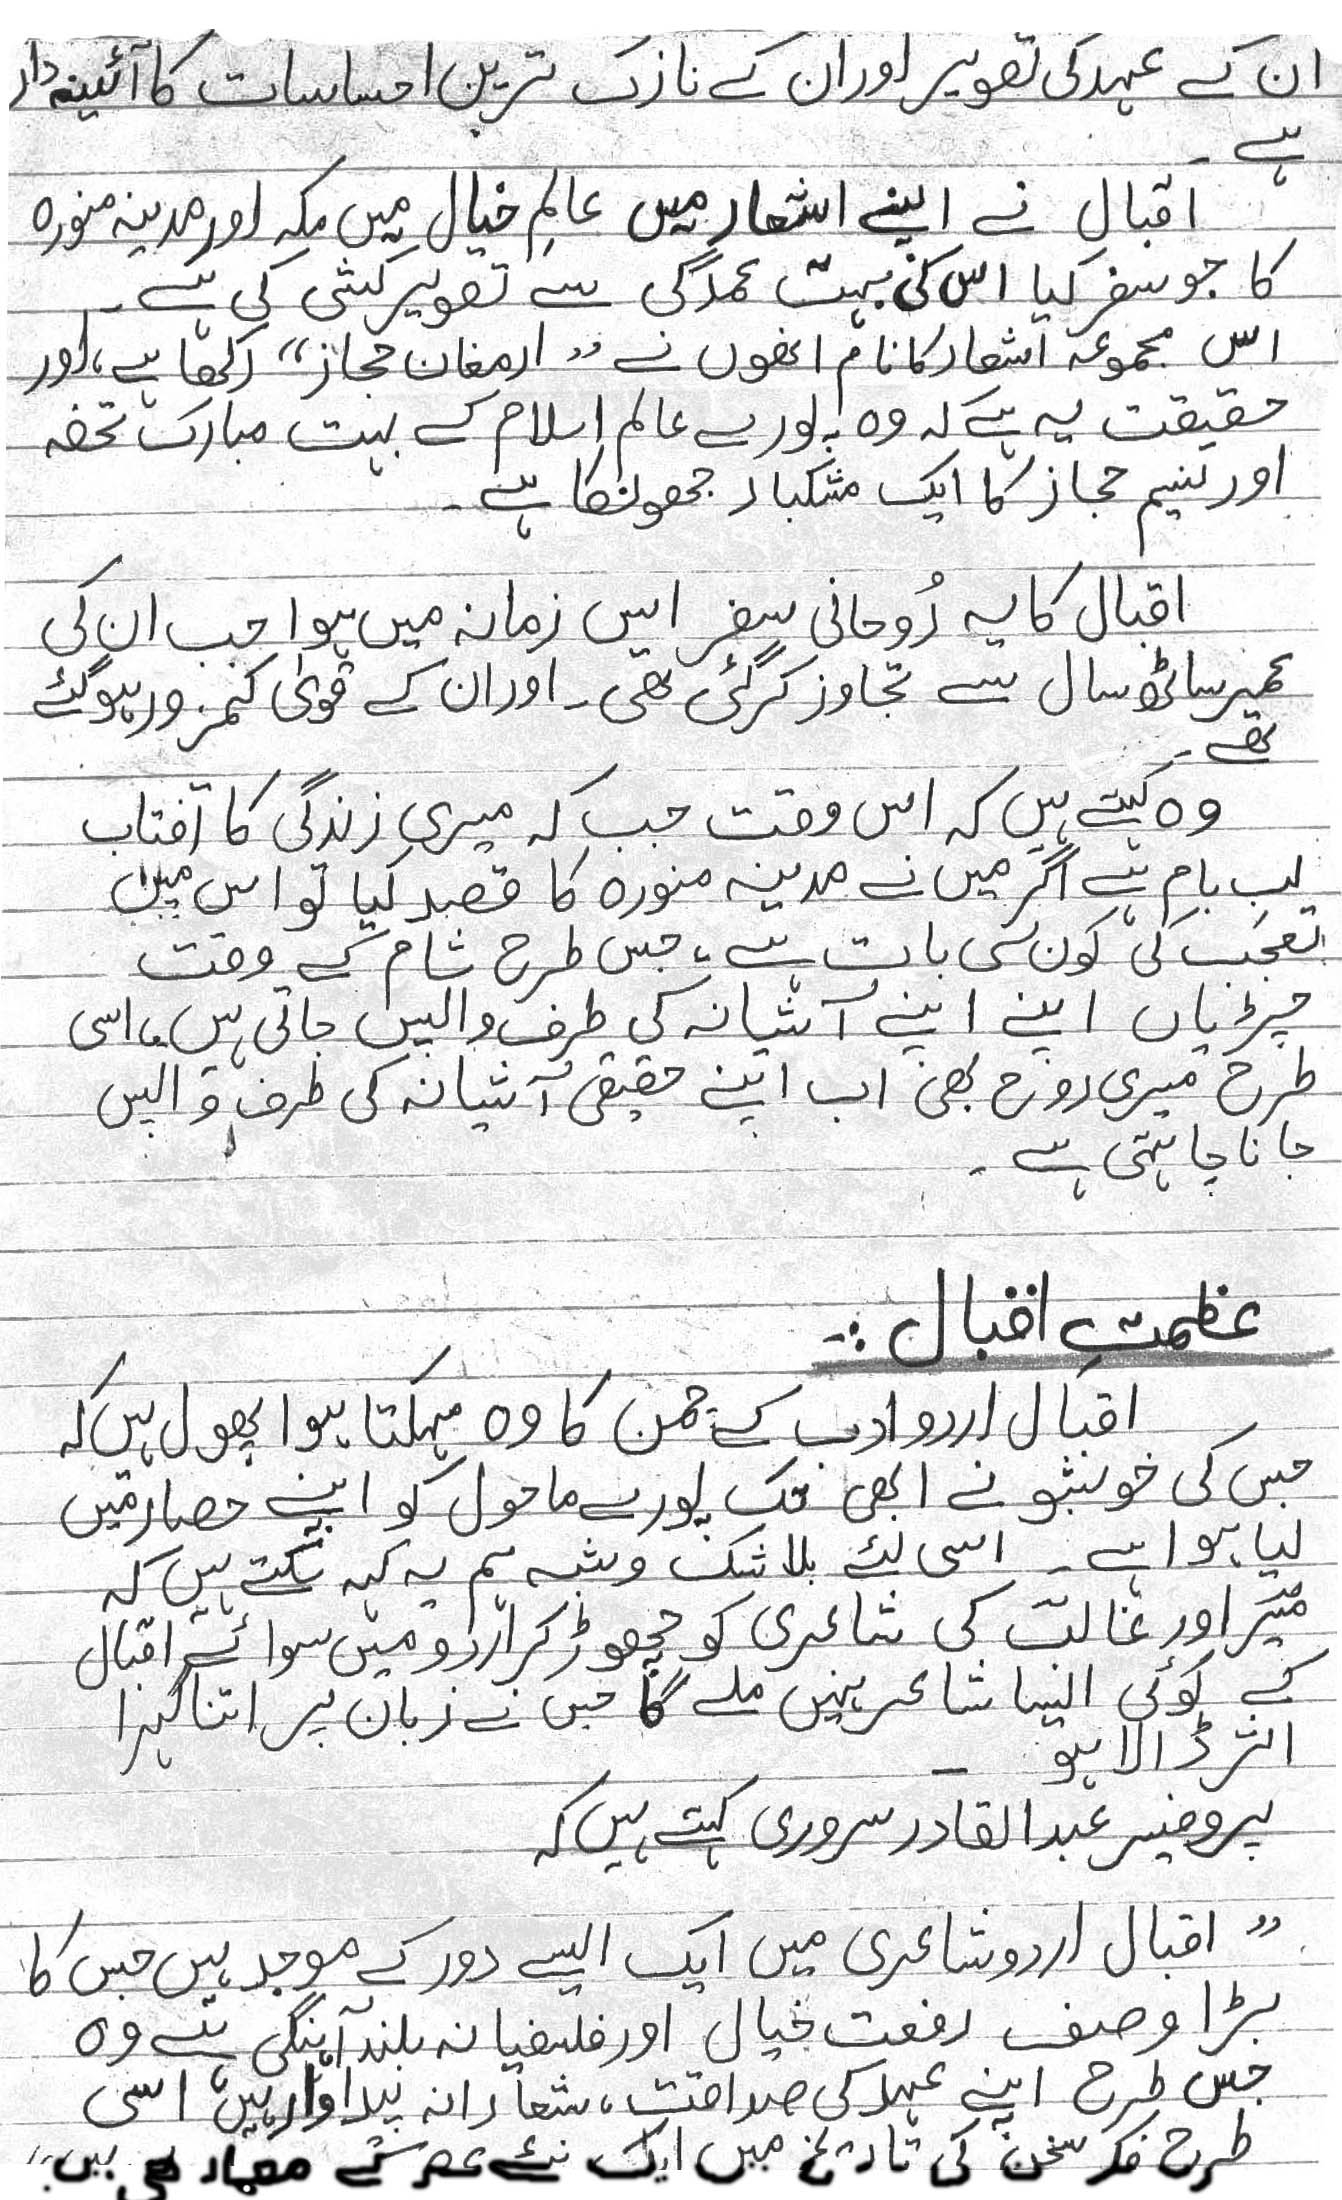 Help with writing essay topics for school students in urdu